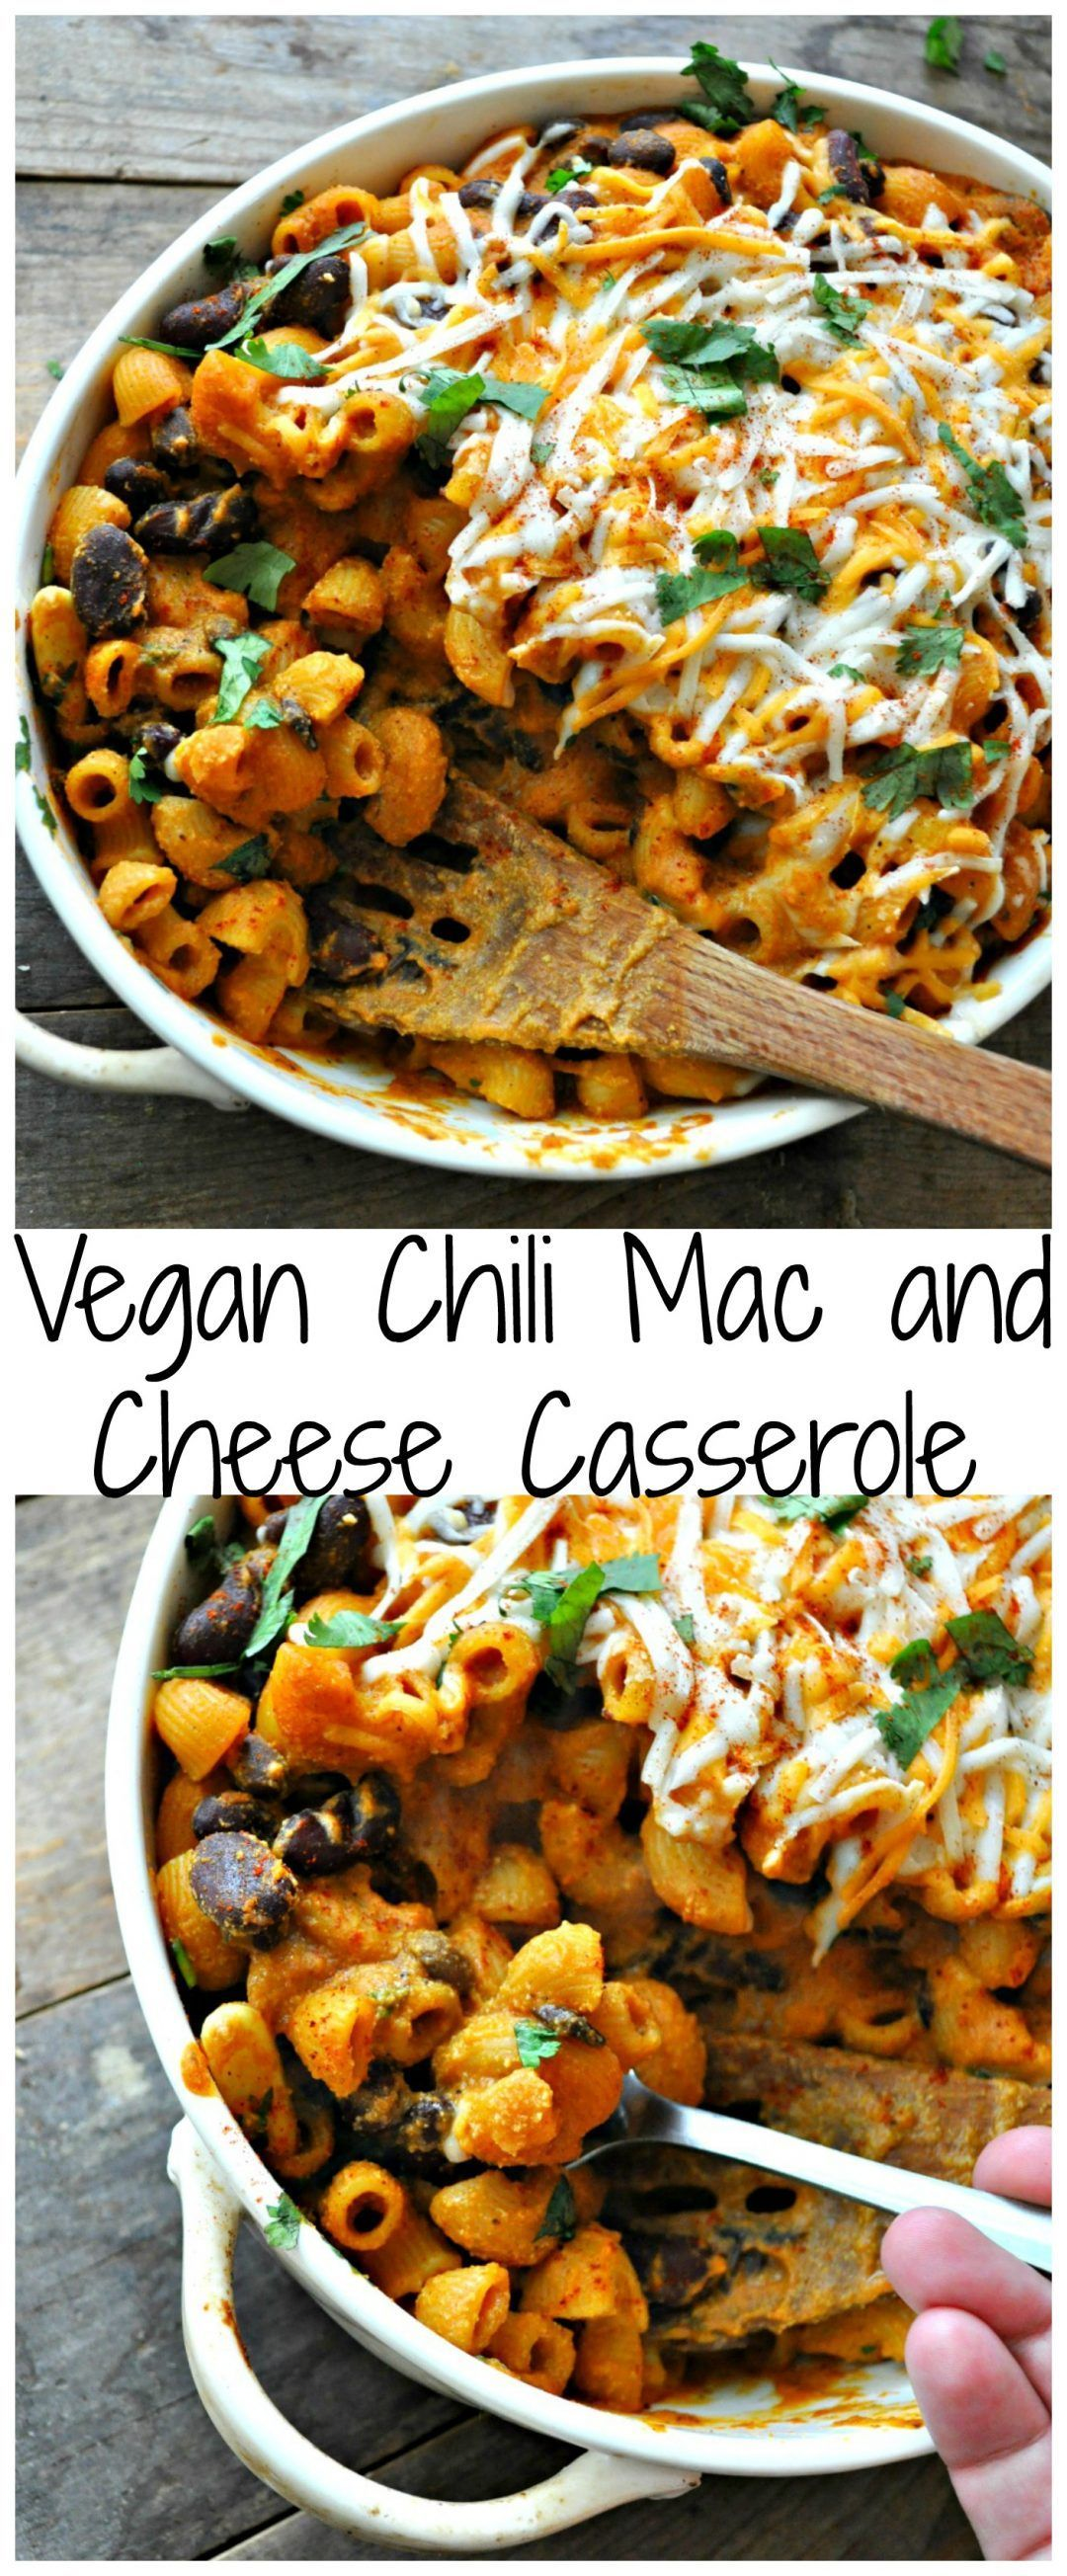 Chili Mac and Cheese Casserole Vegan Chili Mac and Cheese Casserole - Rabbit and Wolves. Easy, delicious and it will feed a crowd. Macaroni cooked in a cheesy chili sauce. Then baked with vegan cheese on top!Vegan Chili Mac and Cheese Casserole - Rabbit and Wolves. Easy, delicious and it will feed a crowd. Macaroni cooked in a cheesy chili sauce. Then baked w...